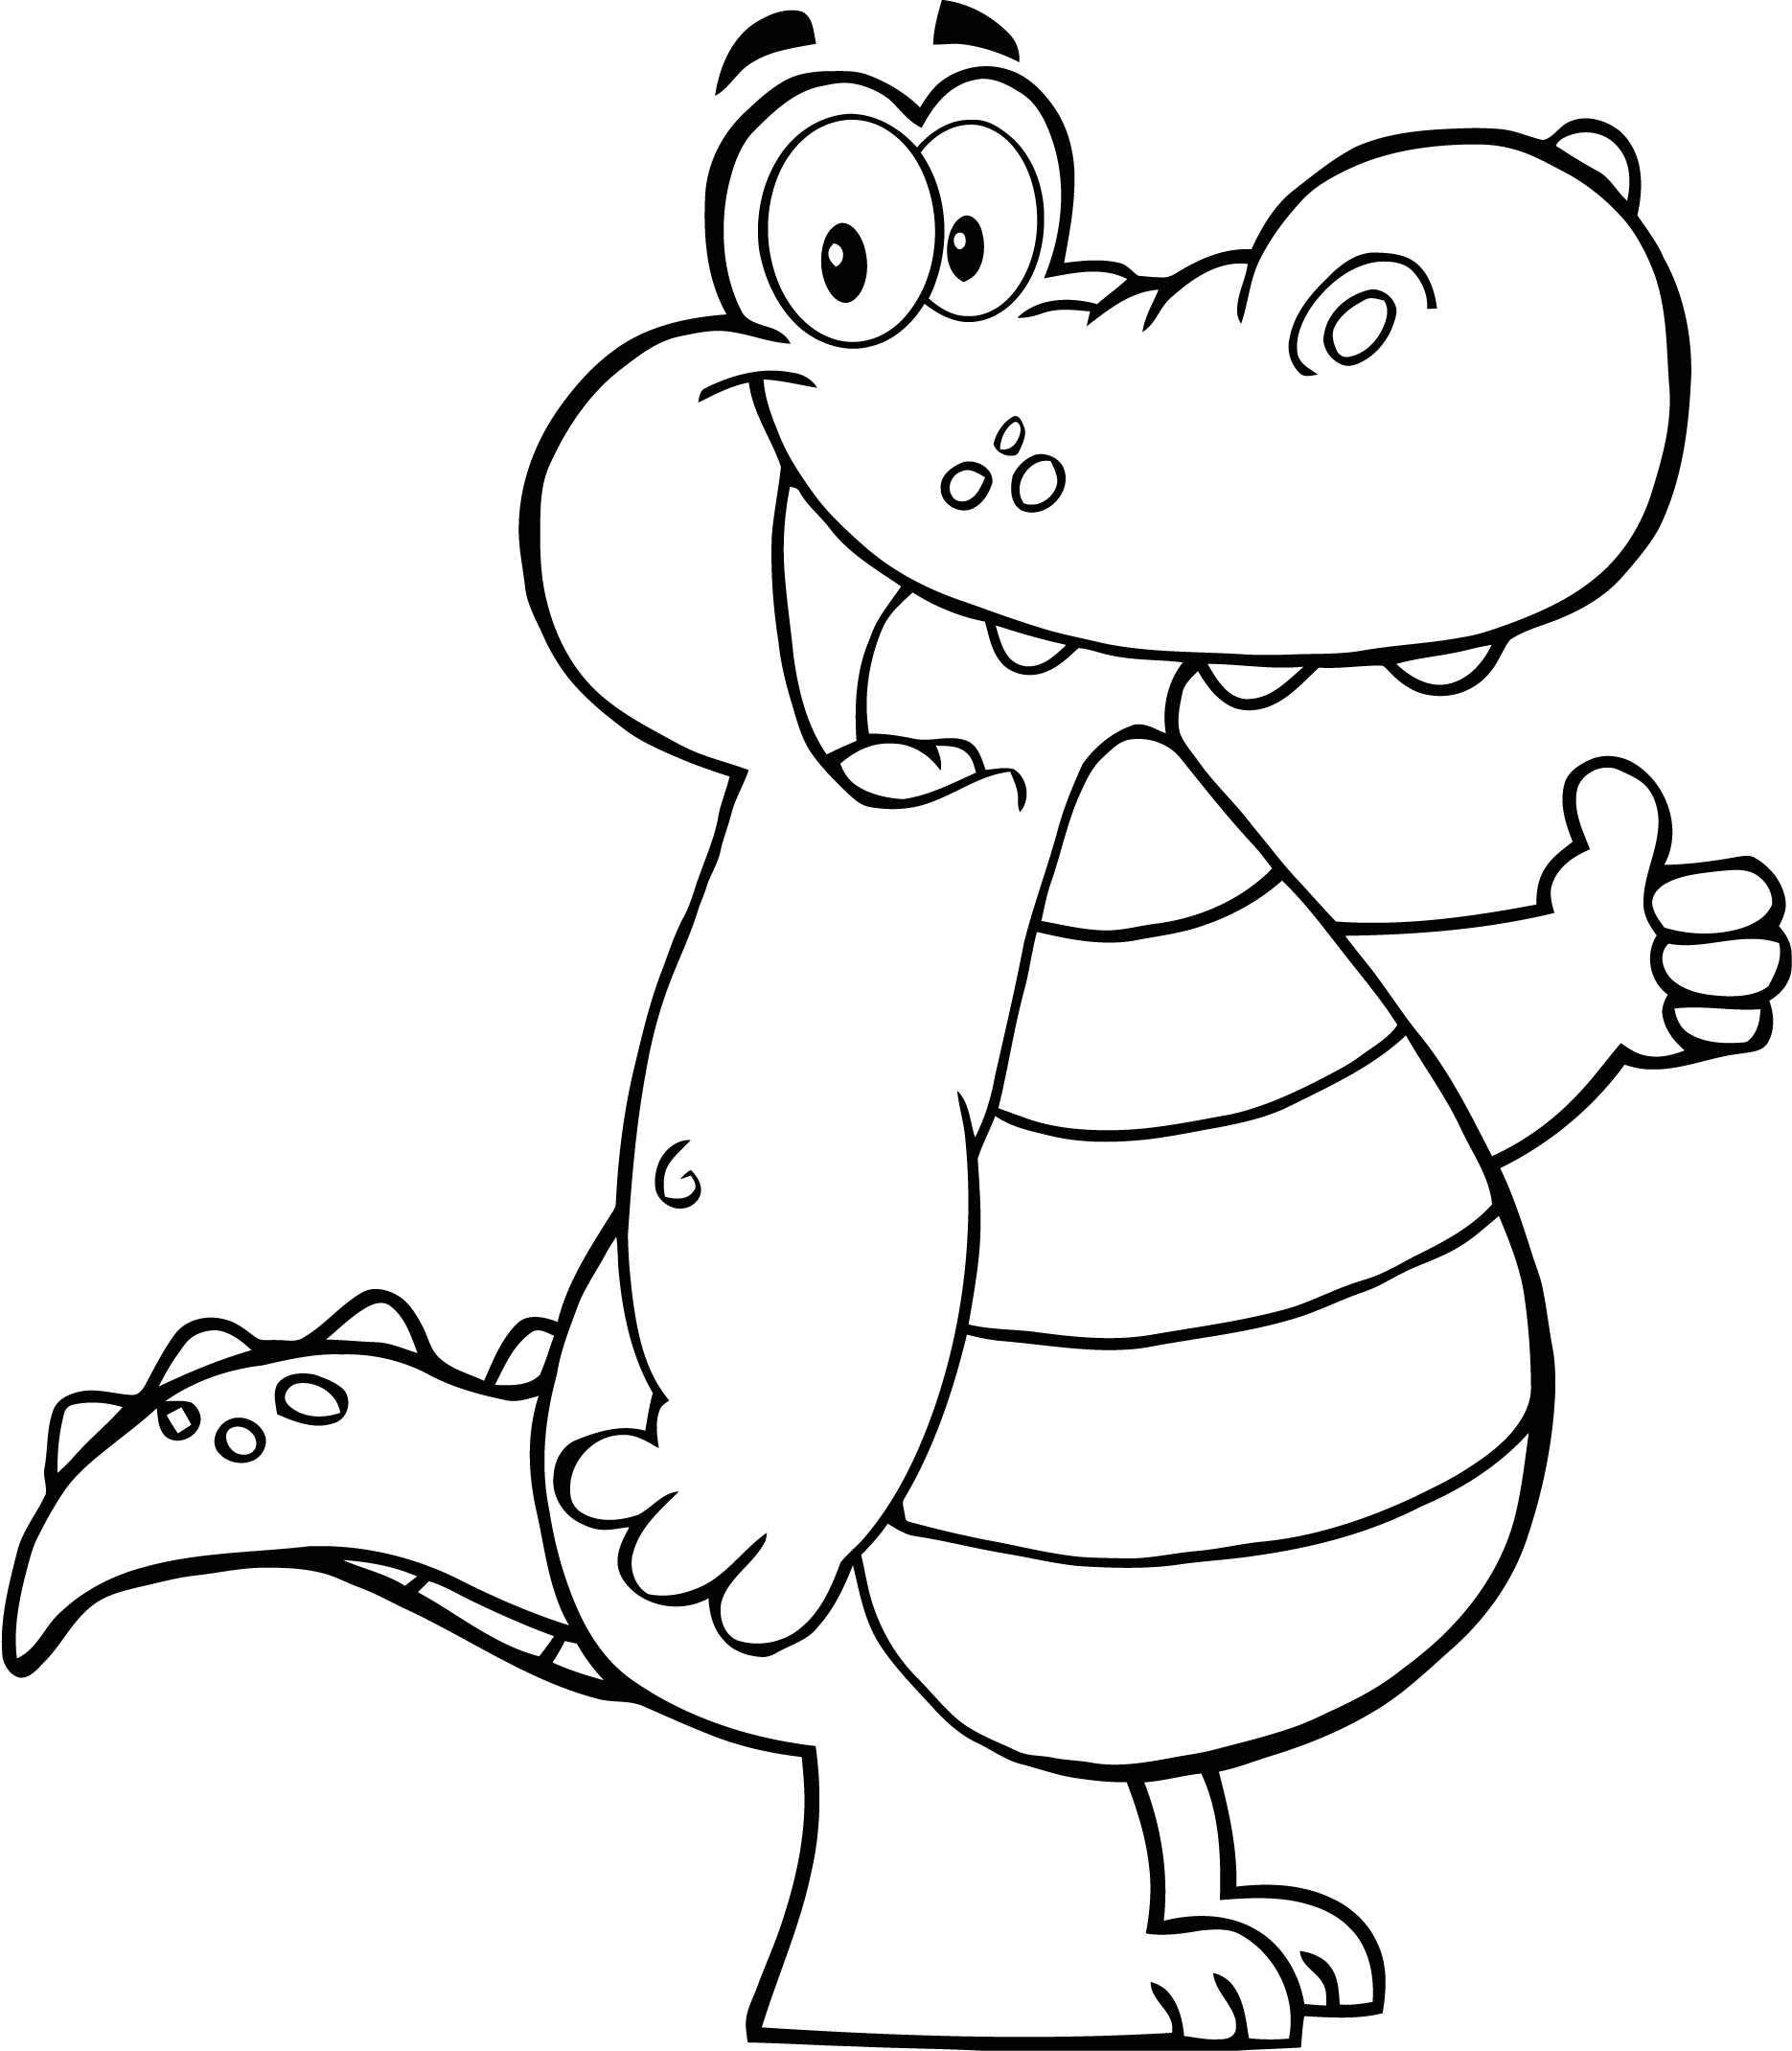 1870x2140 Cute Crocodile Coloring Pages Printable In Good Photo Dringrames